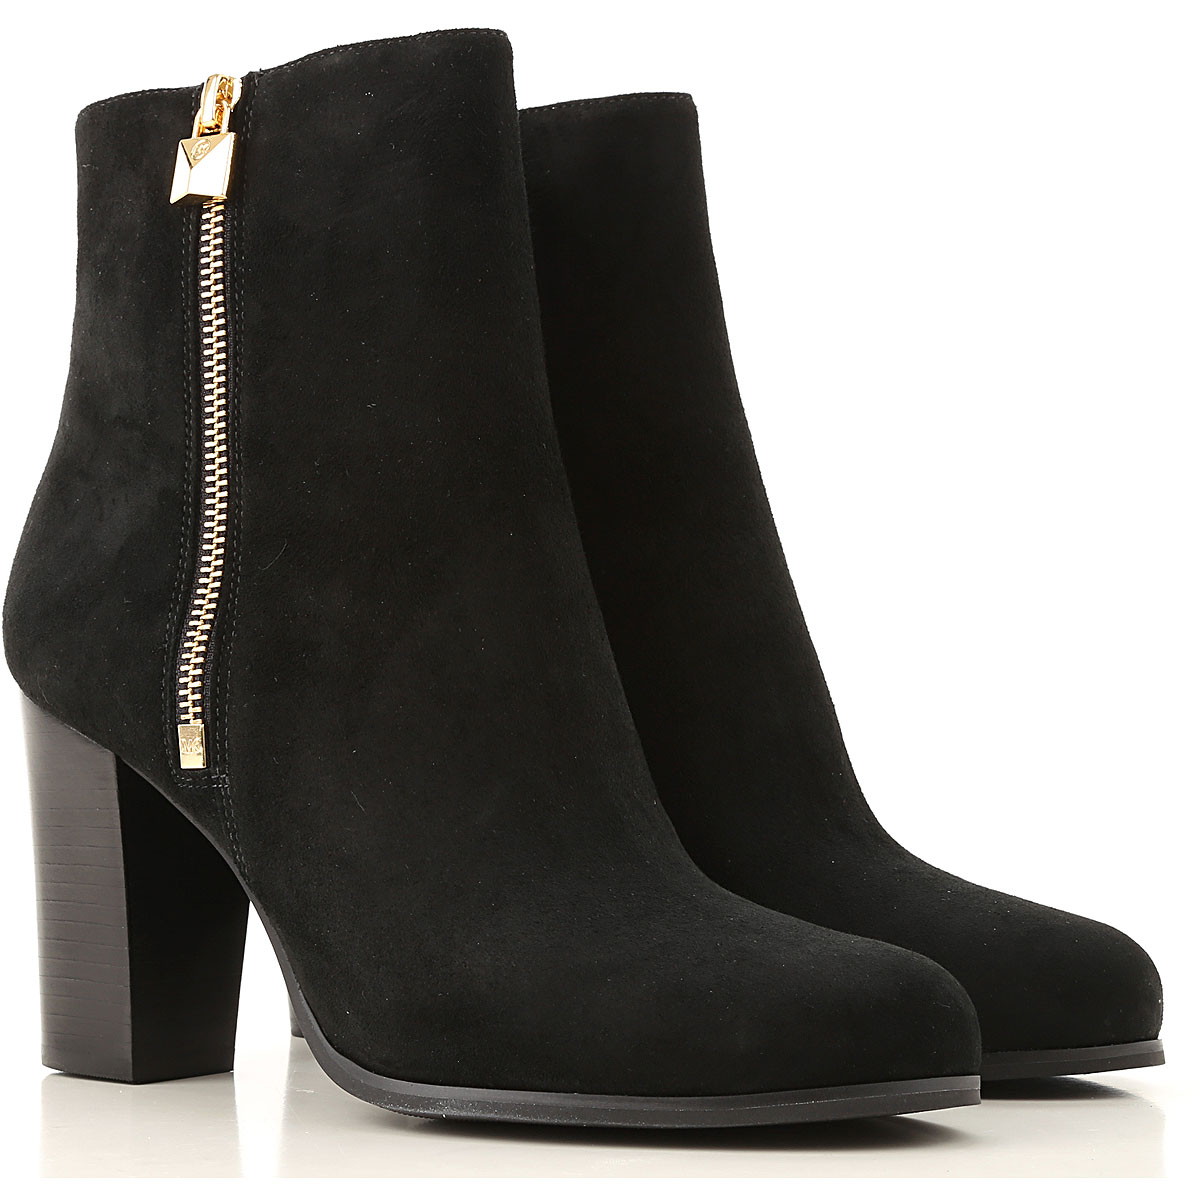 Michael Kors Boots for Women, Booties On Sale, Black, Leather, 2019, 10 5 6 7 8 8.5 9 9.5